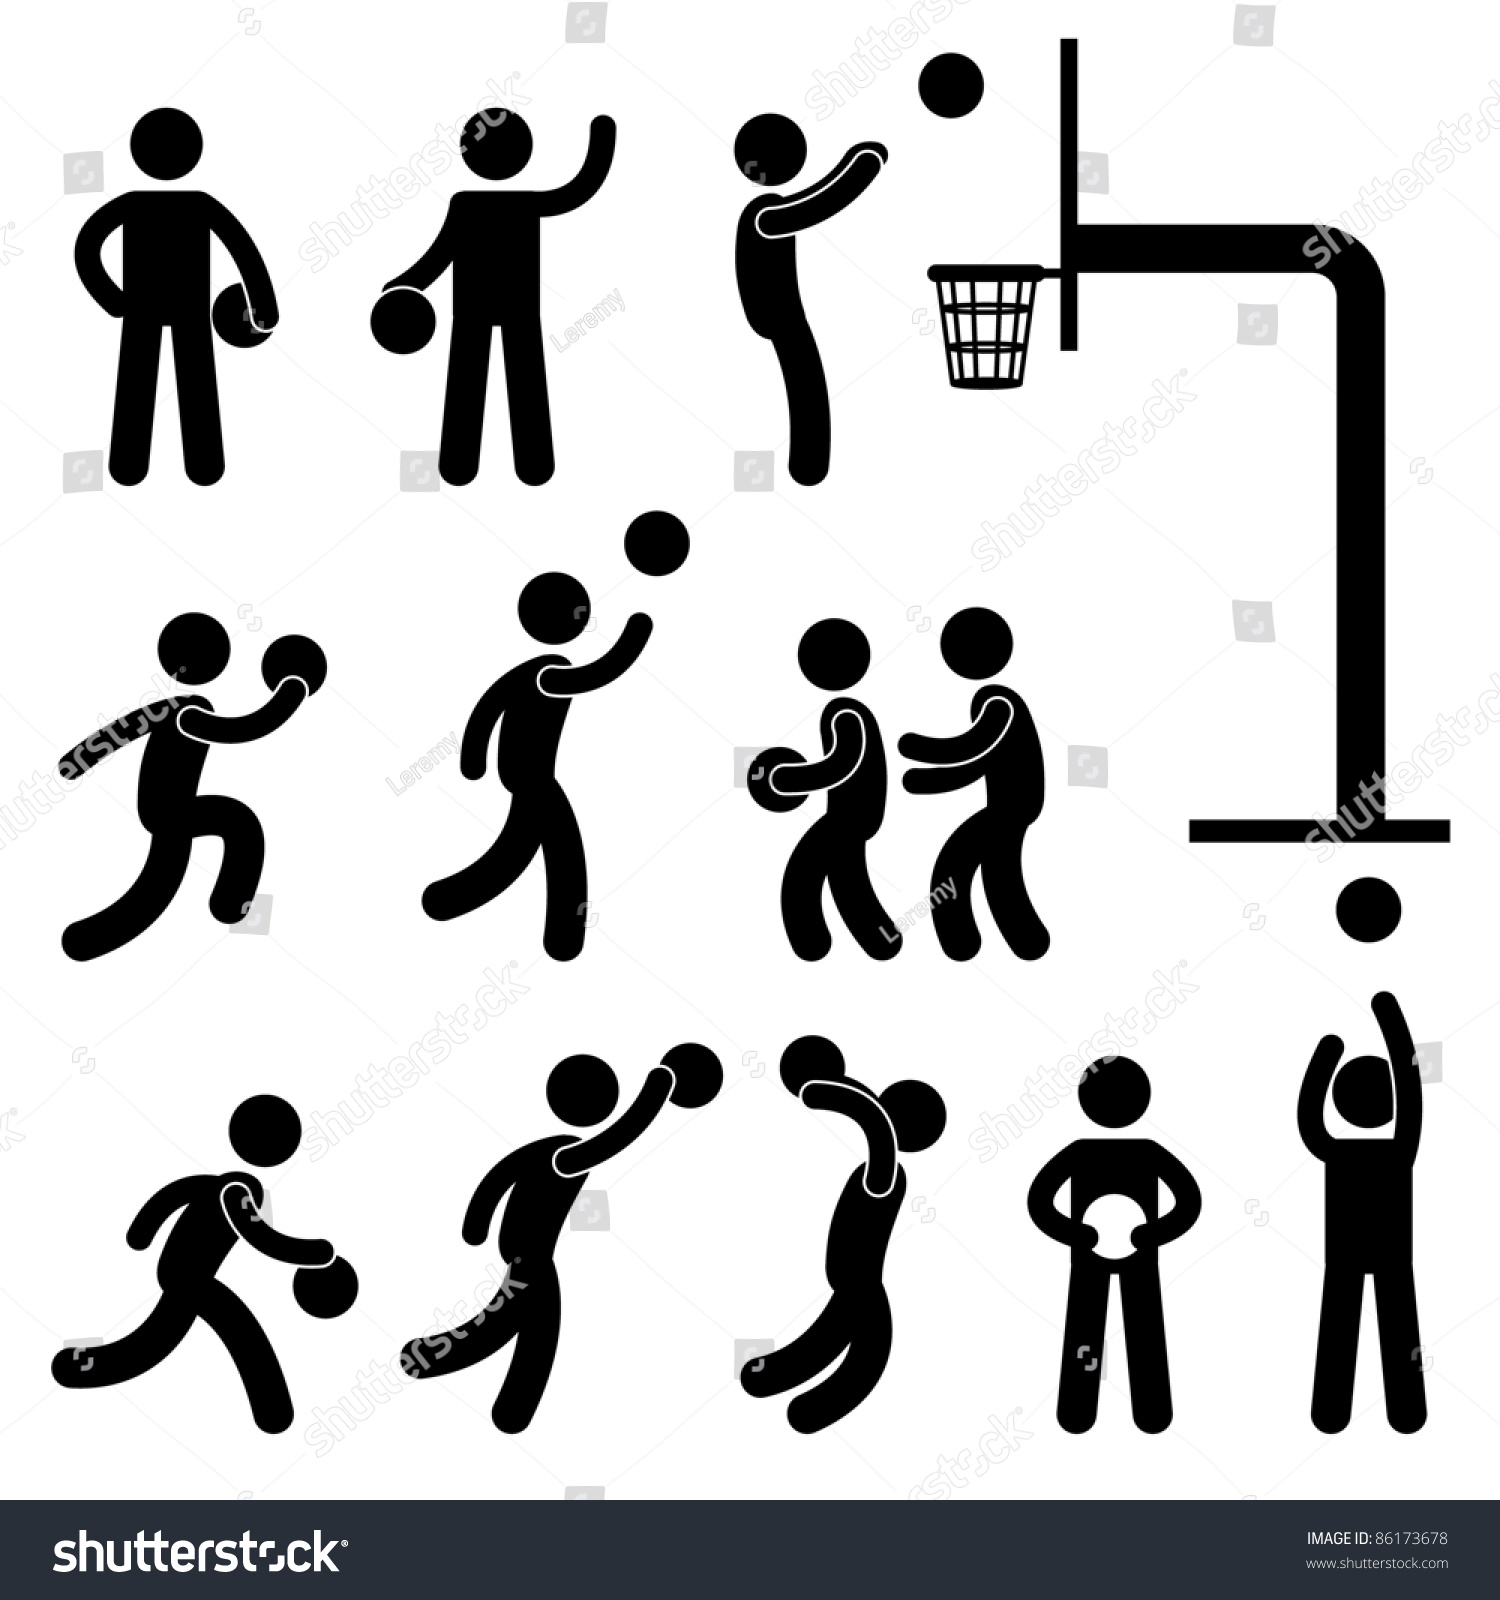 Basketball Player People Icon Sign Symbol Stock Vector ...